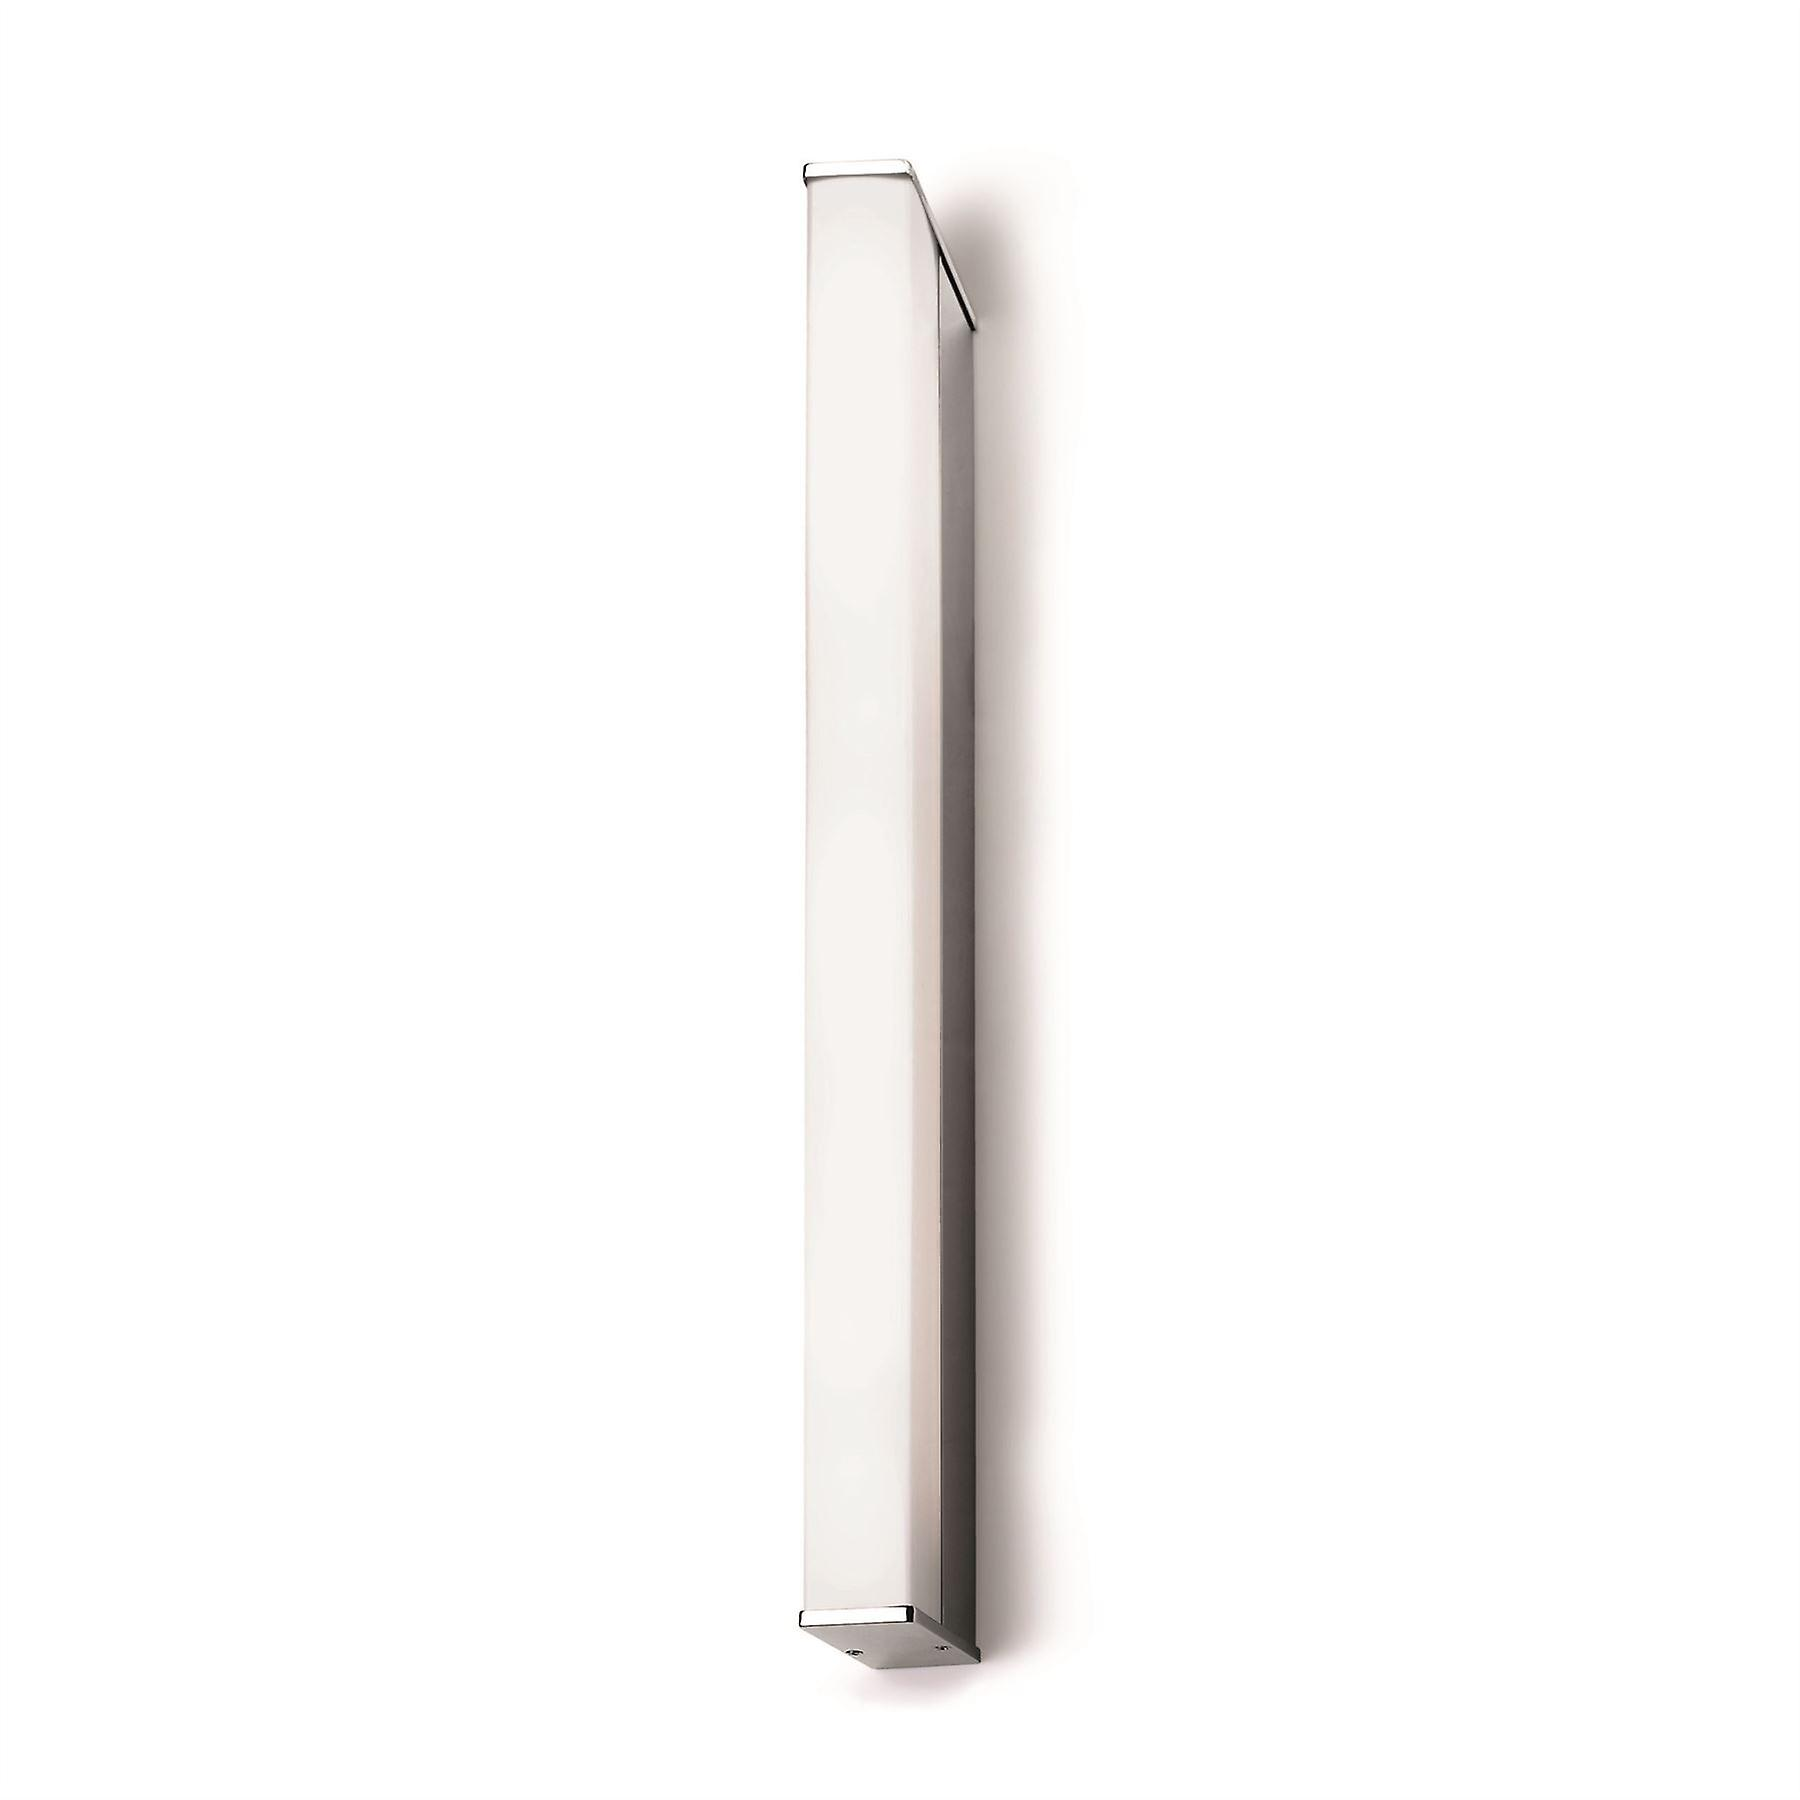 Toilet Q T5 Bathroom Wall Light Medium - Leds-C4 05-4377-21-M1